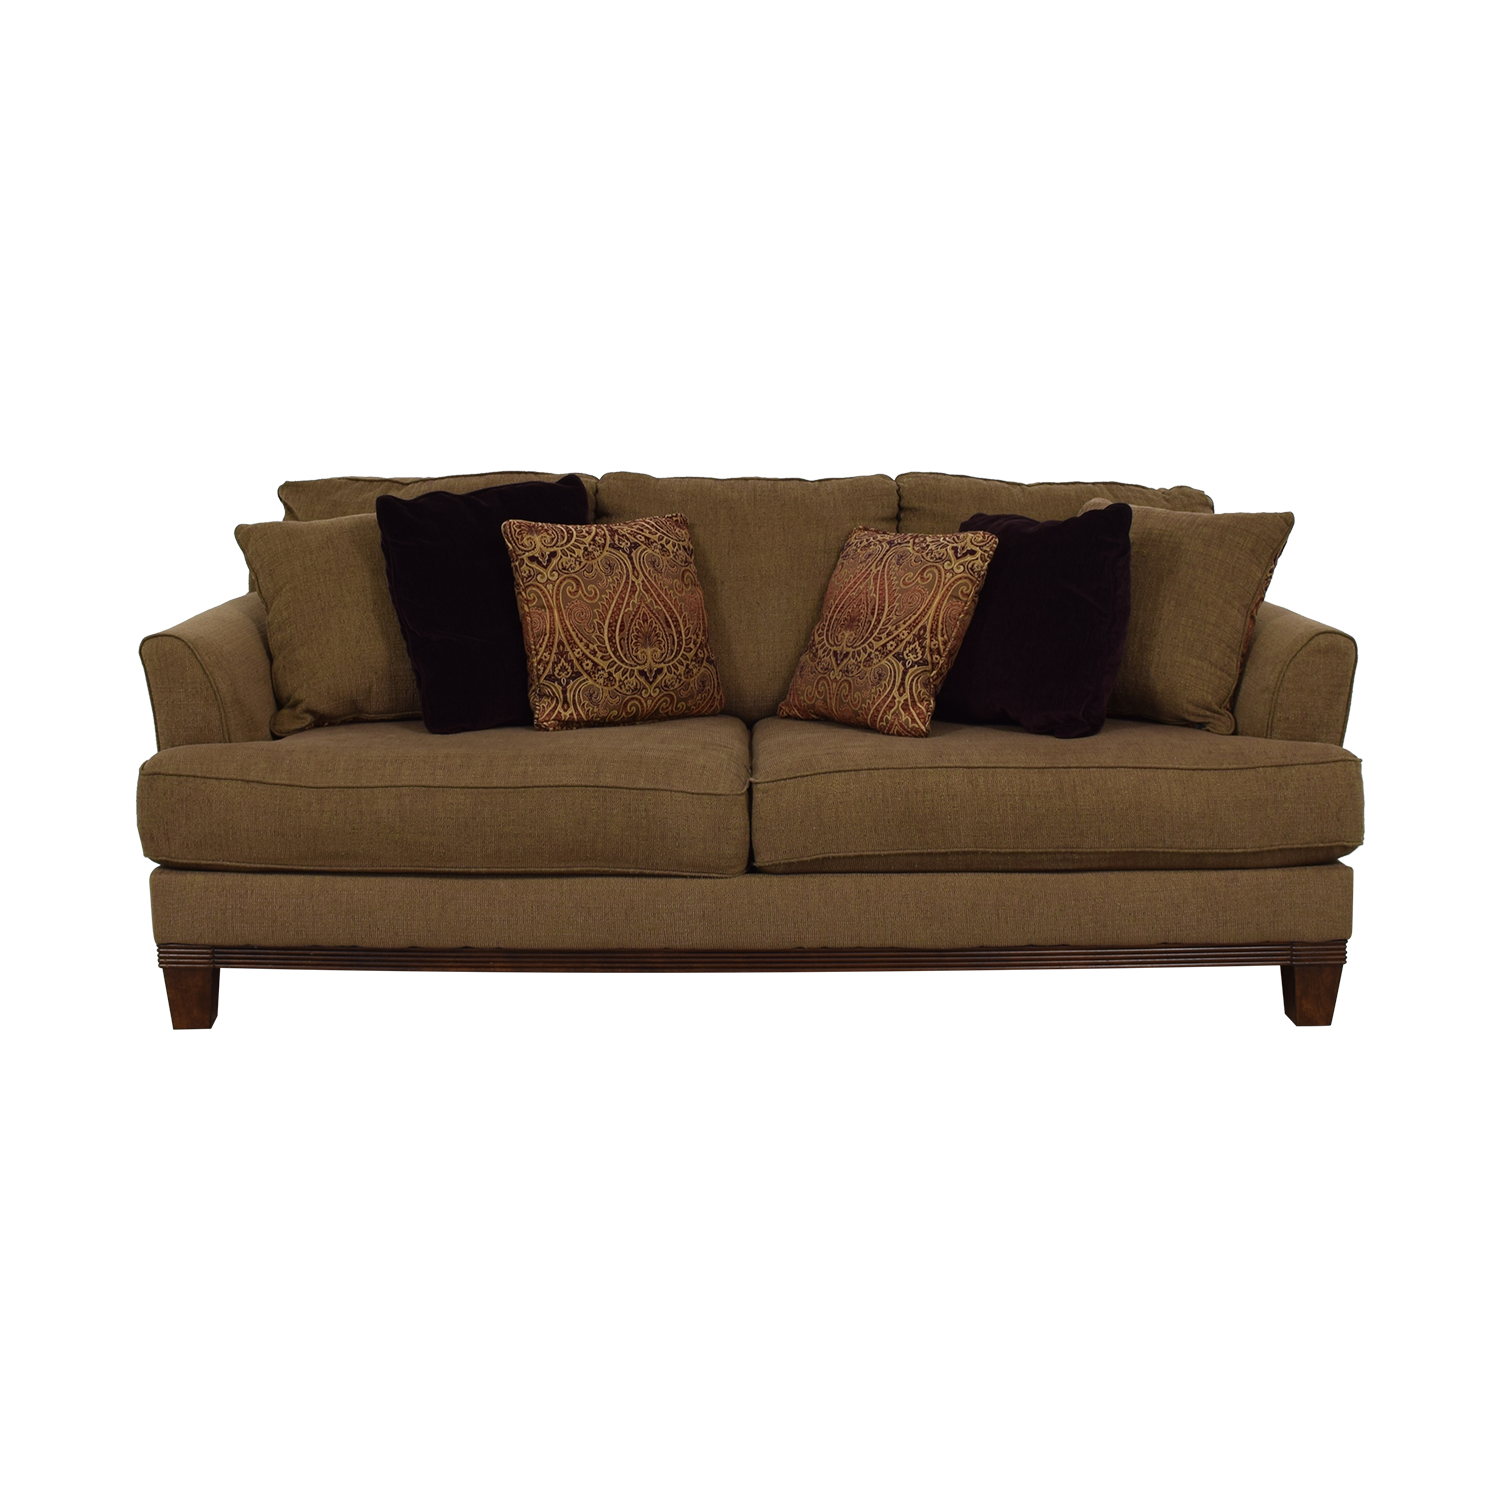 Ashley Furniture Ashley Furniture Brown Two-Cushion Sofa Sofas